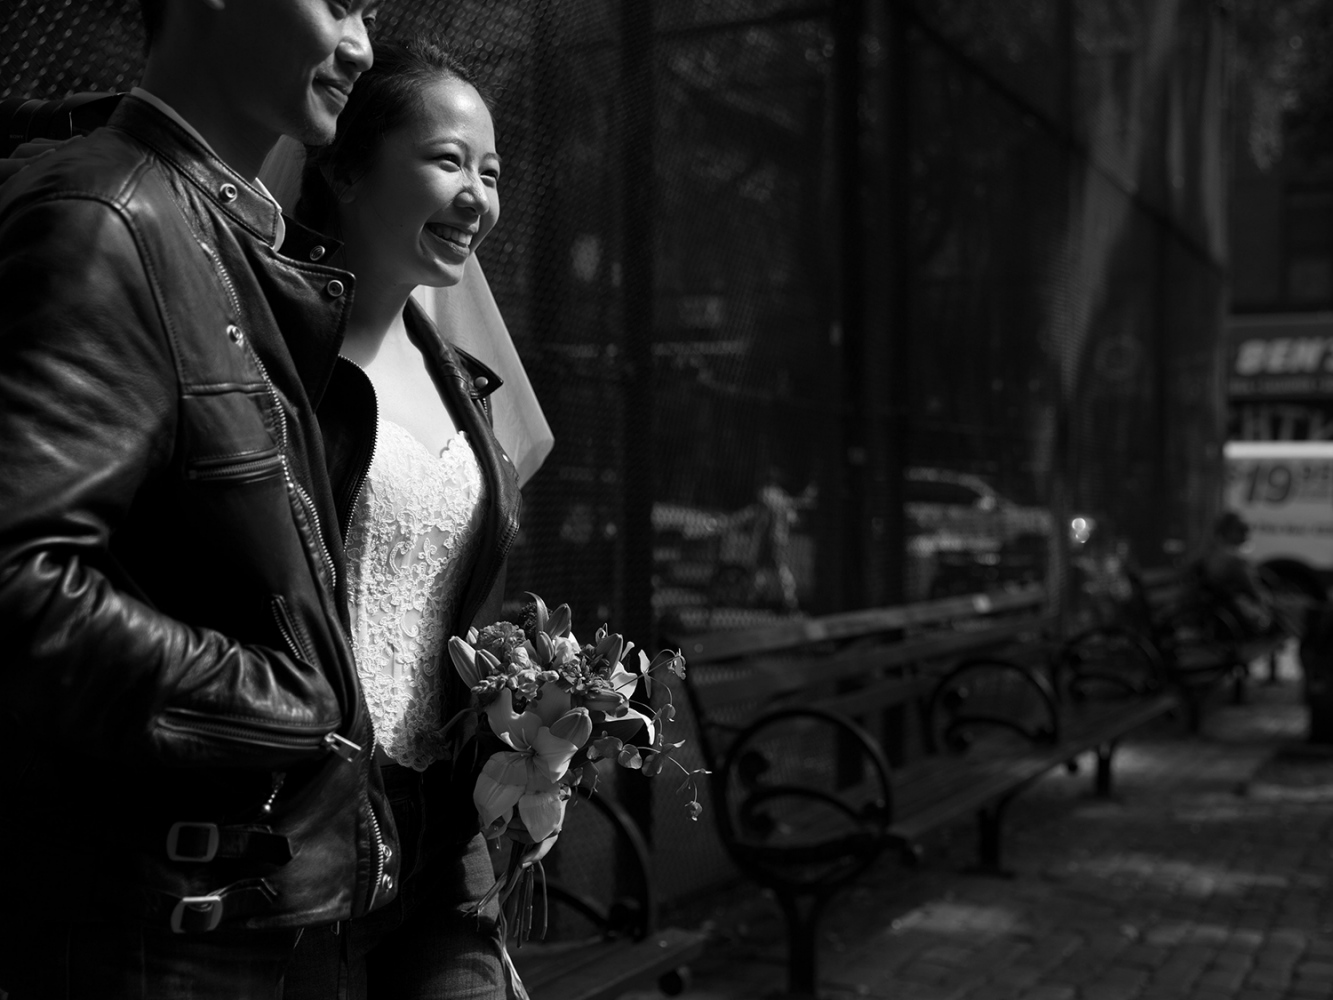 A couple who just got married, New York, 2017.